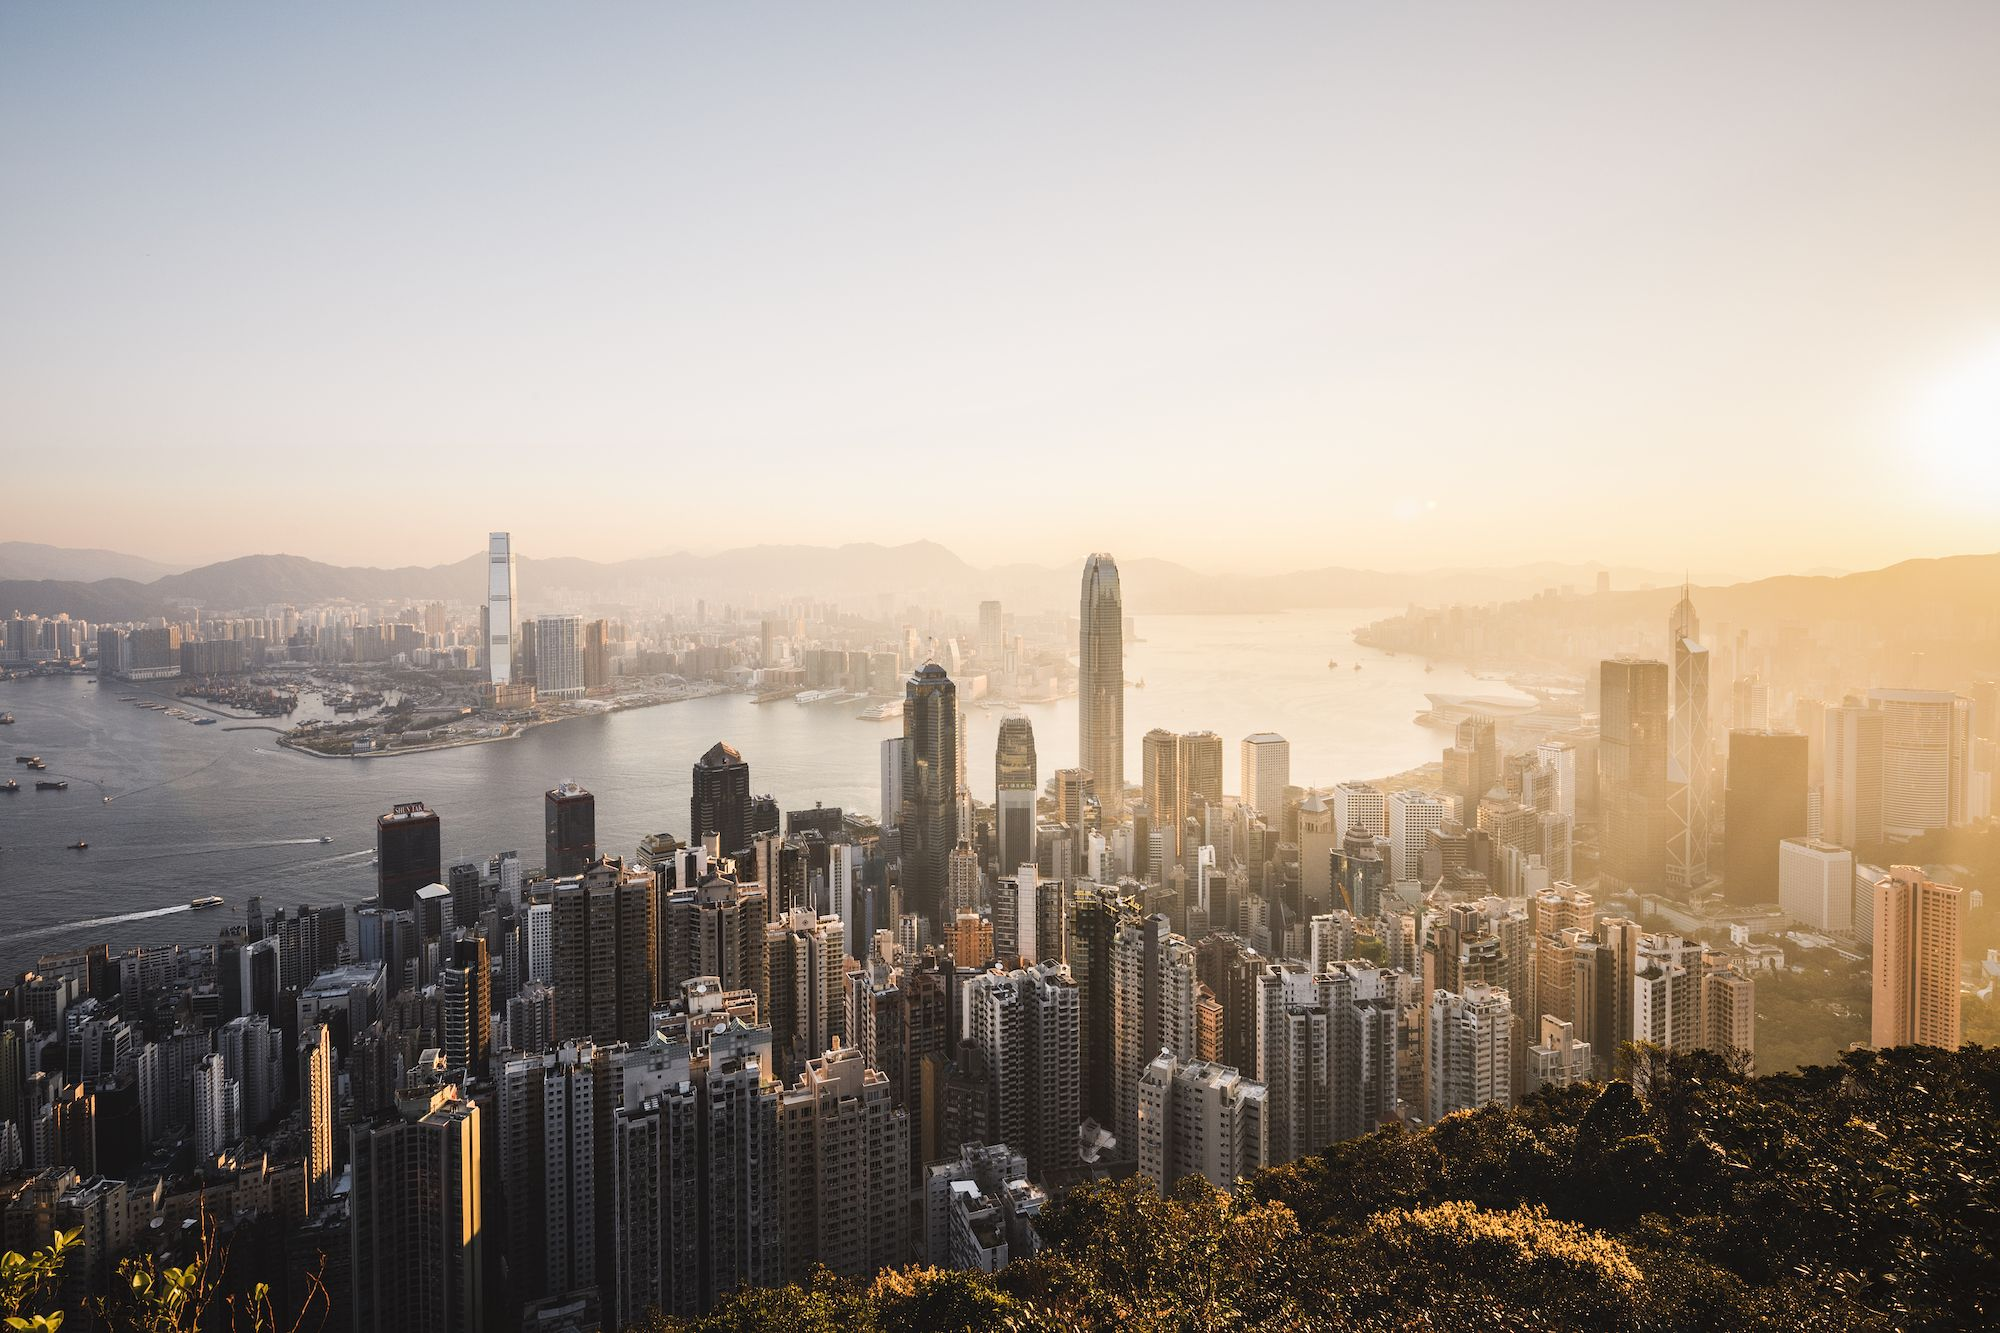 Hong Kong Staycations On The Rise As Airbnb Reveals An Upward Trend For Local Travel